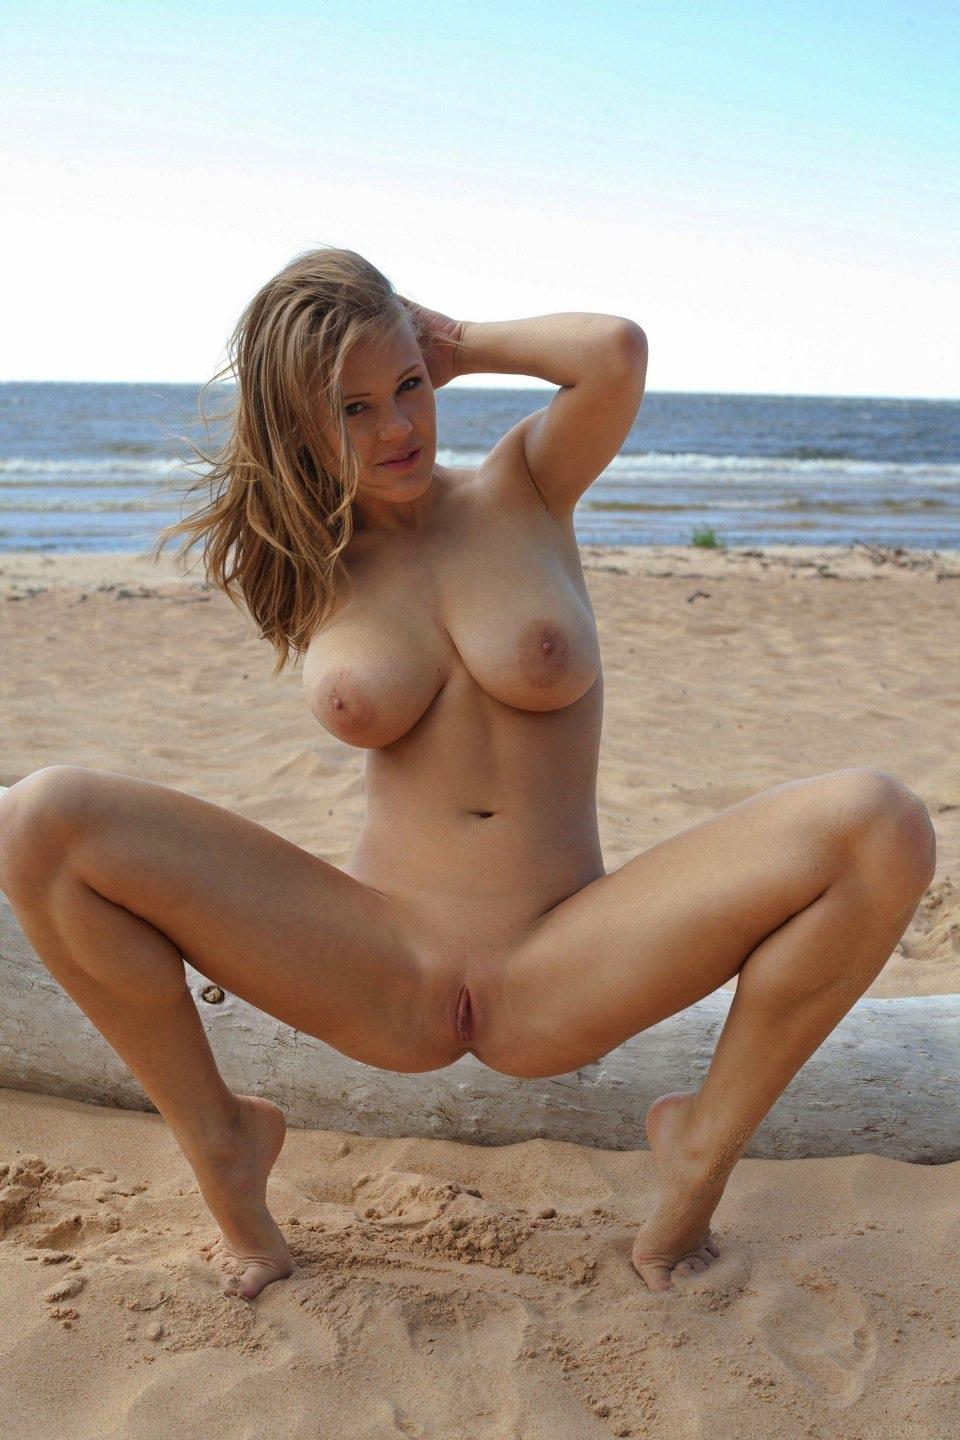 Naked girls on the beach. Part 1 - 25